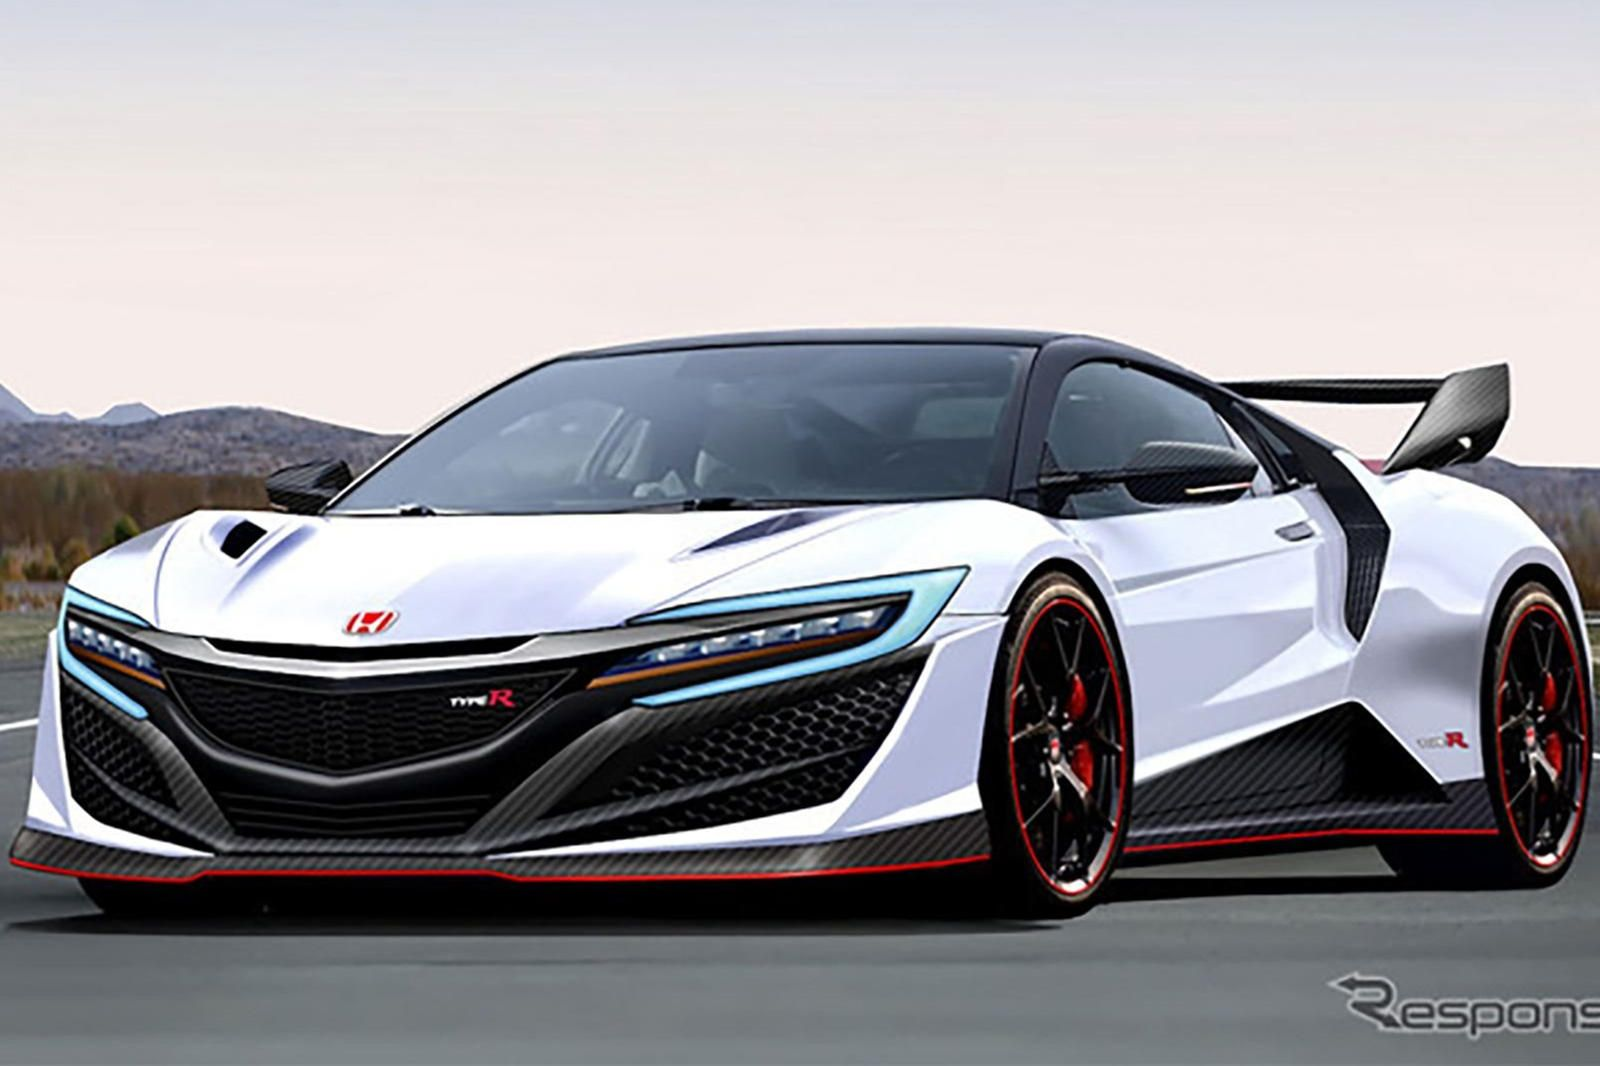 We Could See A Honda Nsx Type R Later This Year Super Cars Acura Nsx Nsx